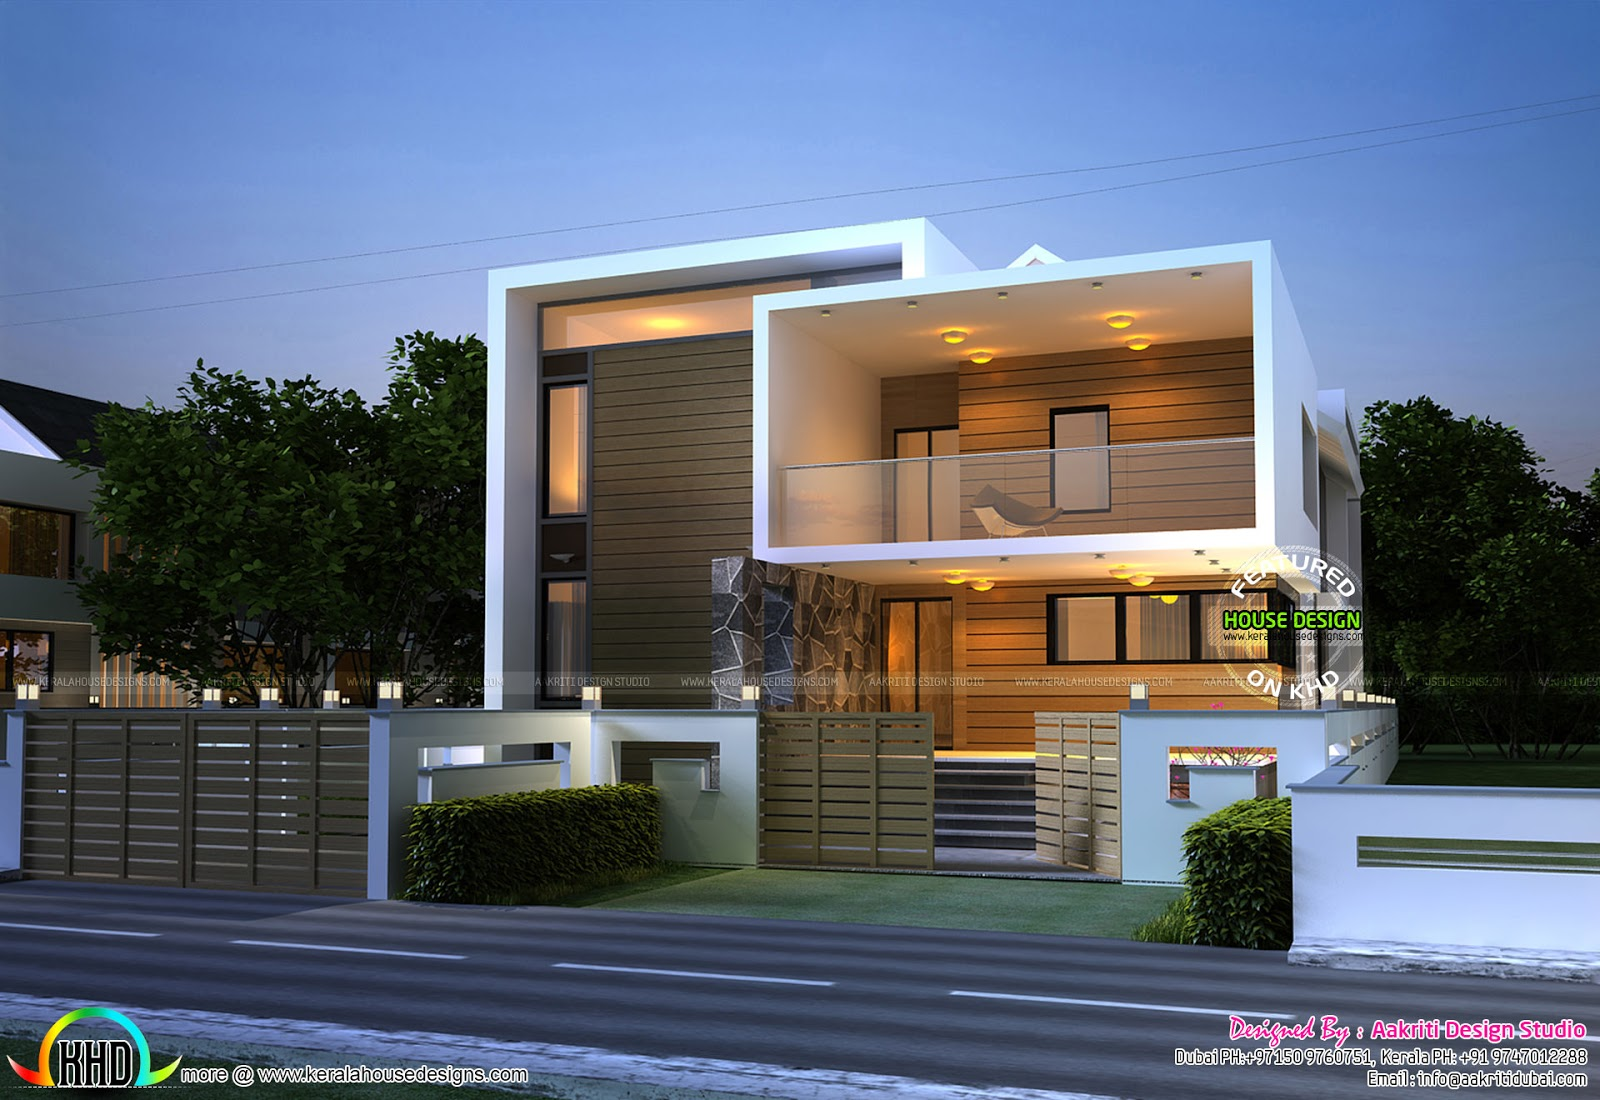 First Floor Elevation Models : Cute box model home with basement floor kerala